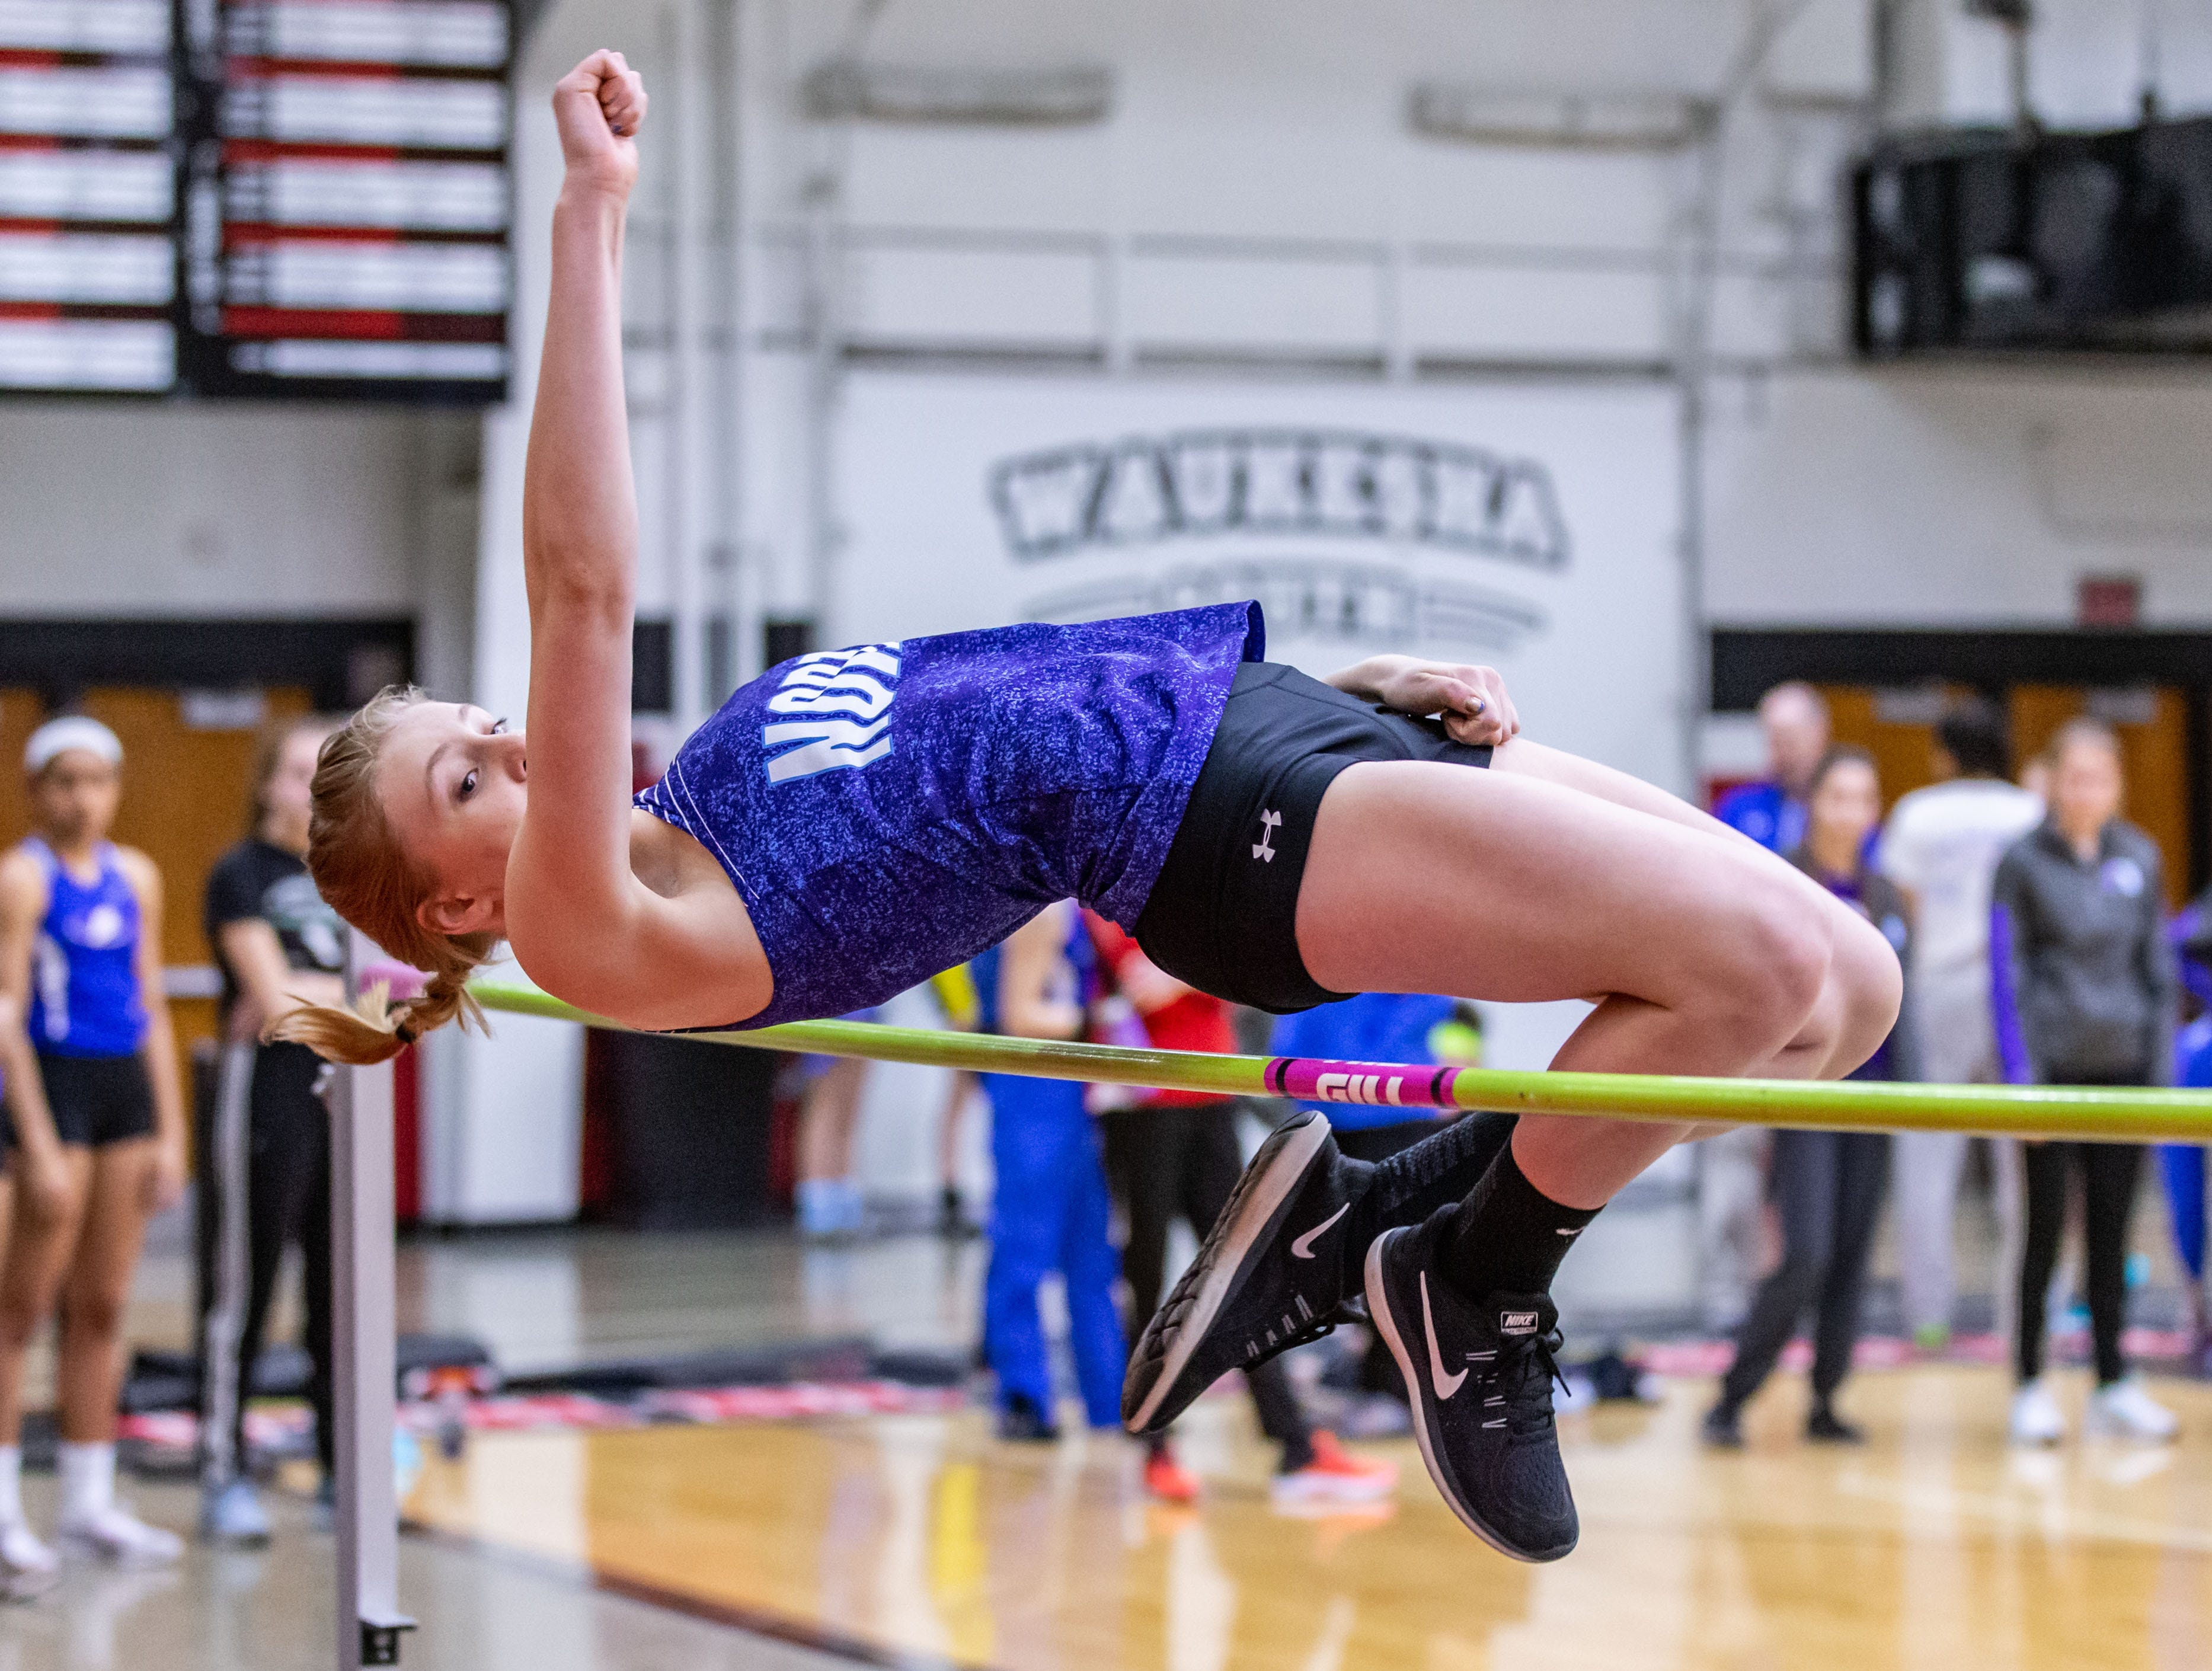 Waukesha North's Kaitlyn Curtis competes in the high jump at the Peter Rempe Cardinal Relays hosted by Waukesha South on Thursday, March 21, 2019.